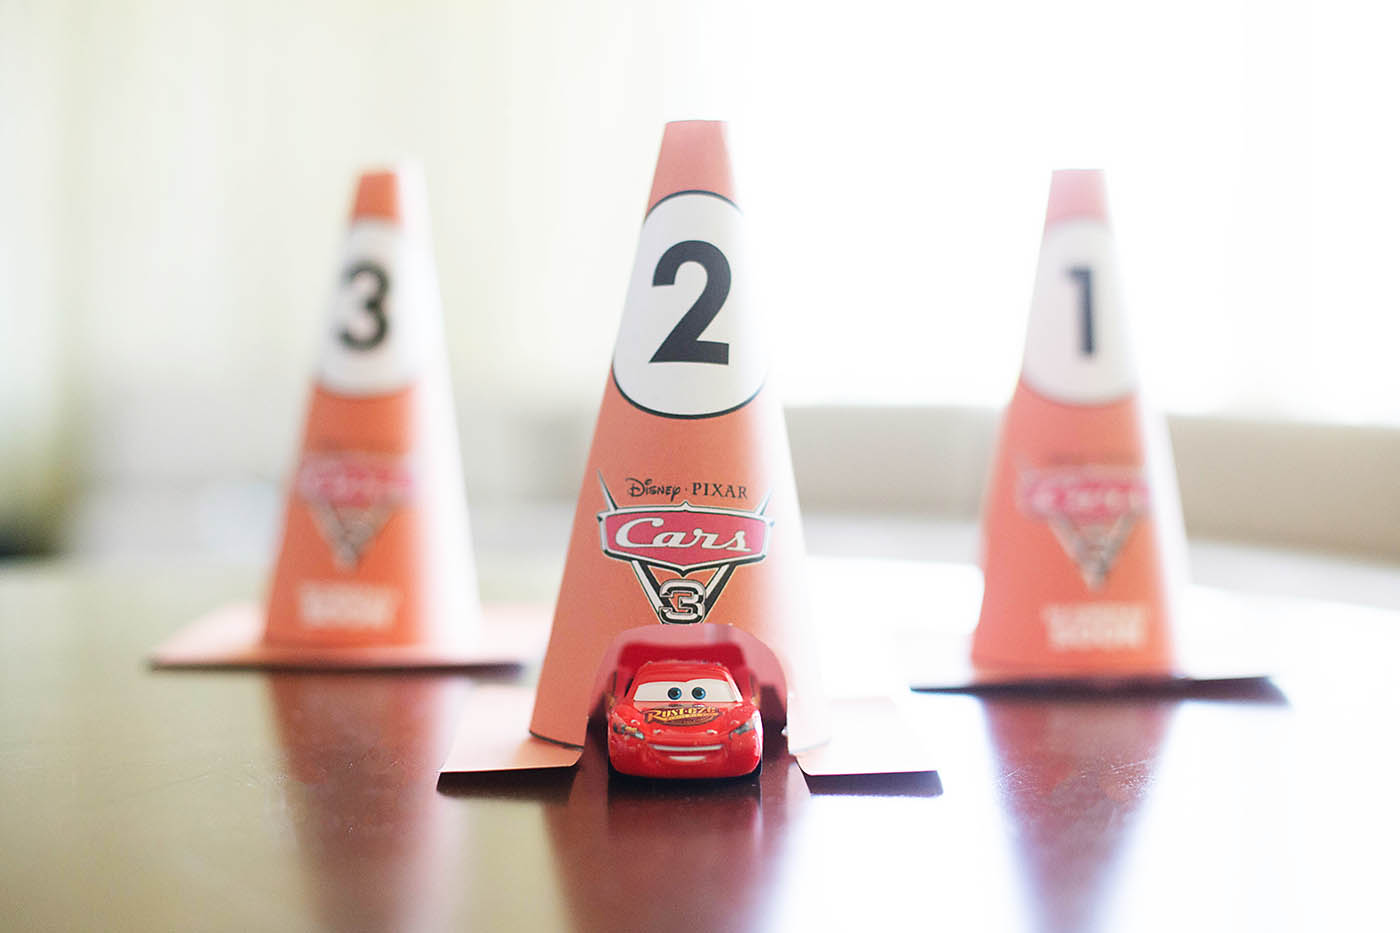 Cars 3 printable cones